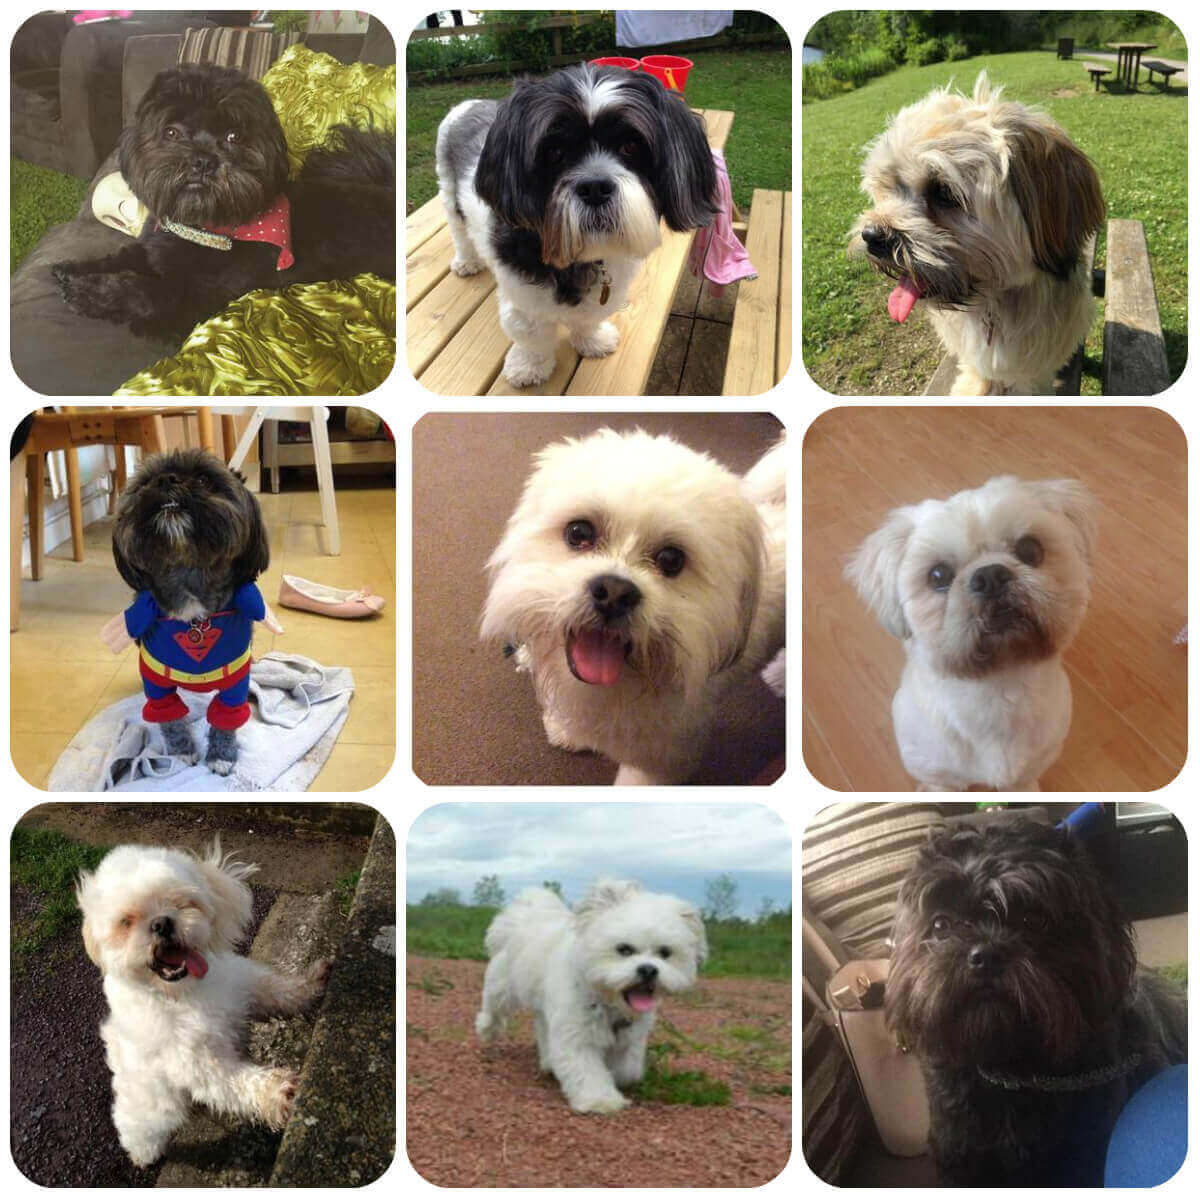 collage of lhasa apso dogs and puppies, part of BorrowMyDoggy's guide to dog breeds.